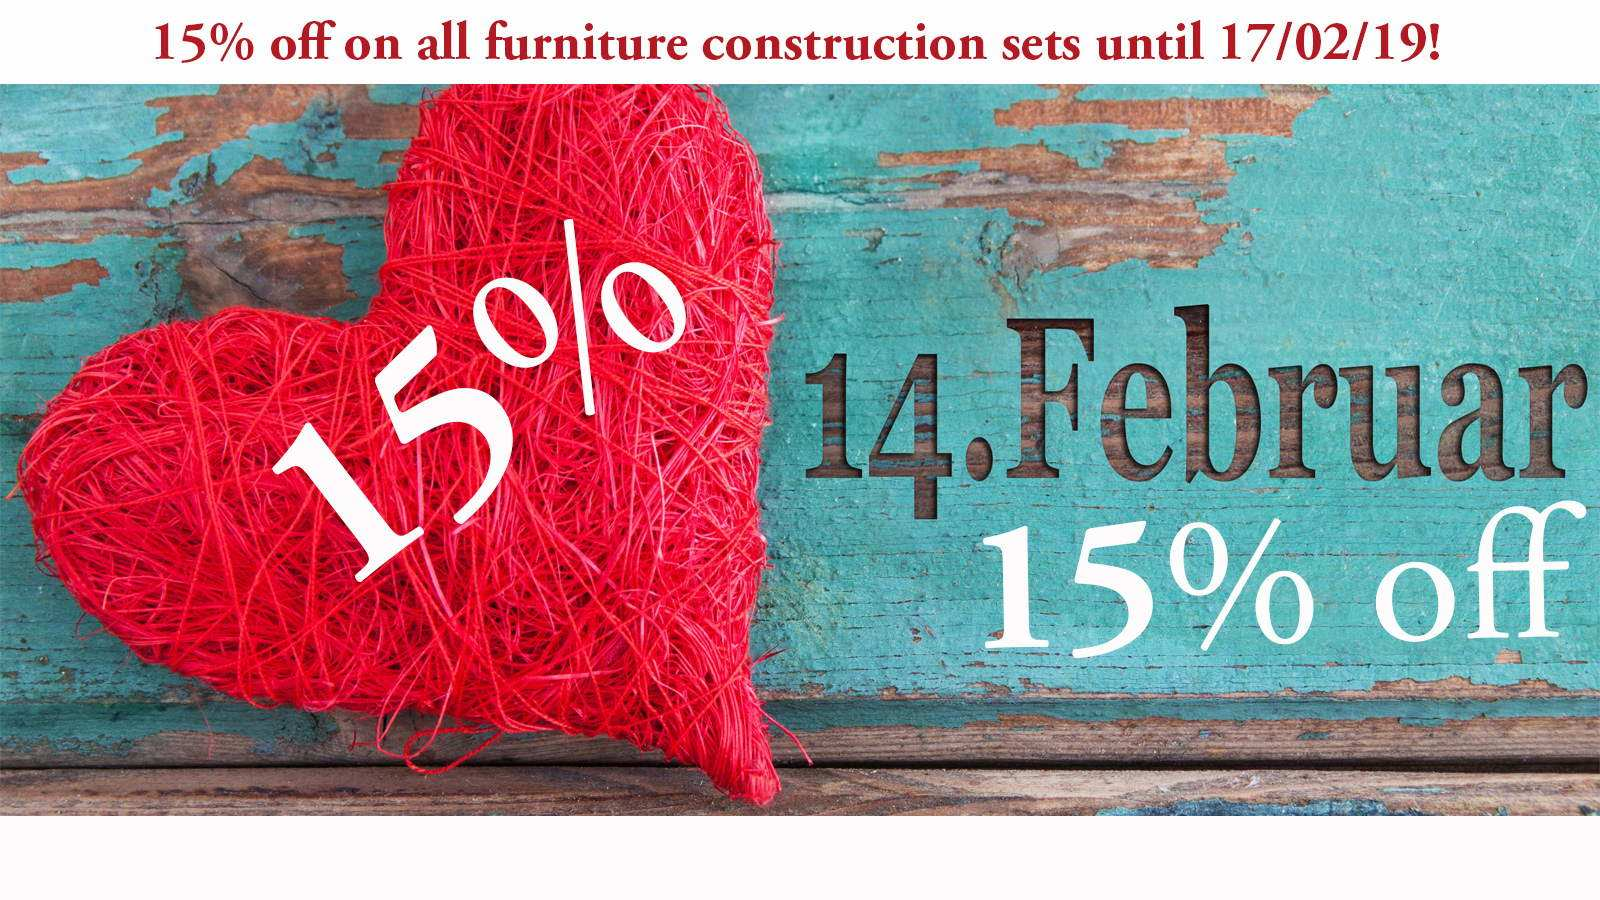 Our Valentine's Day gift for you: Furniture construction sets to fall in love with!